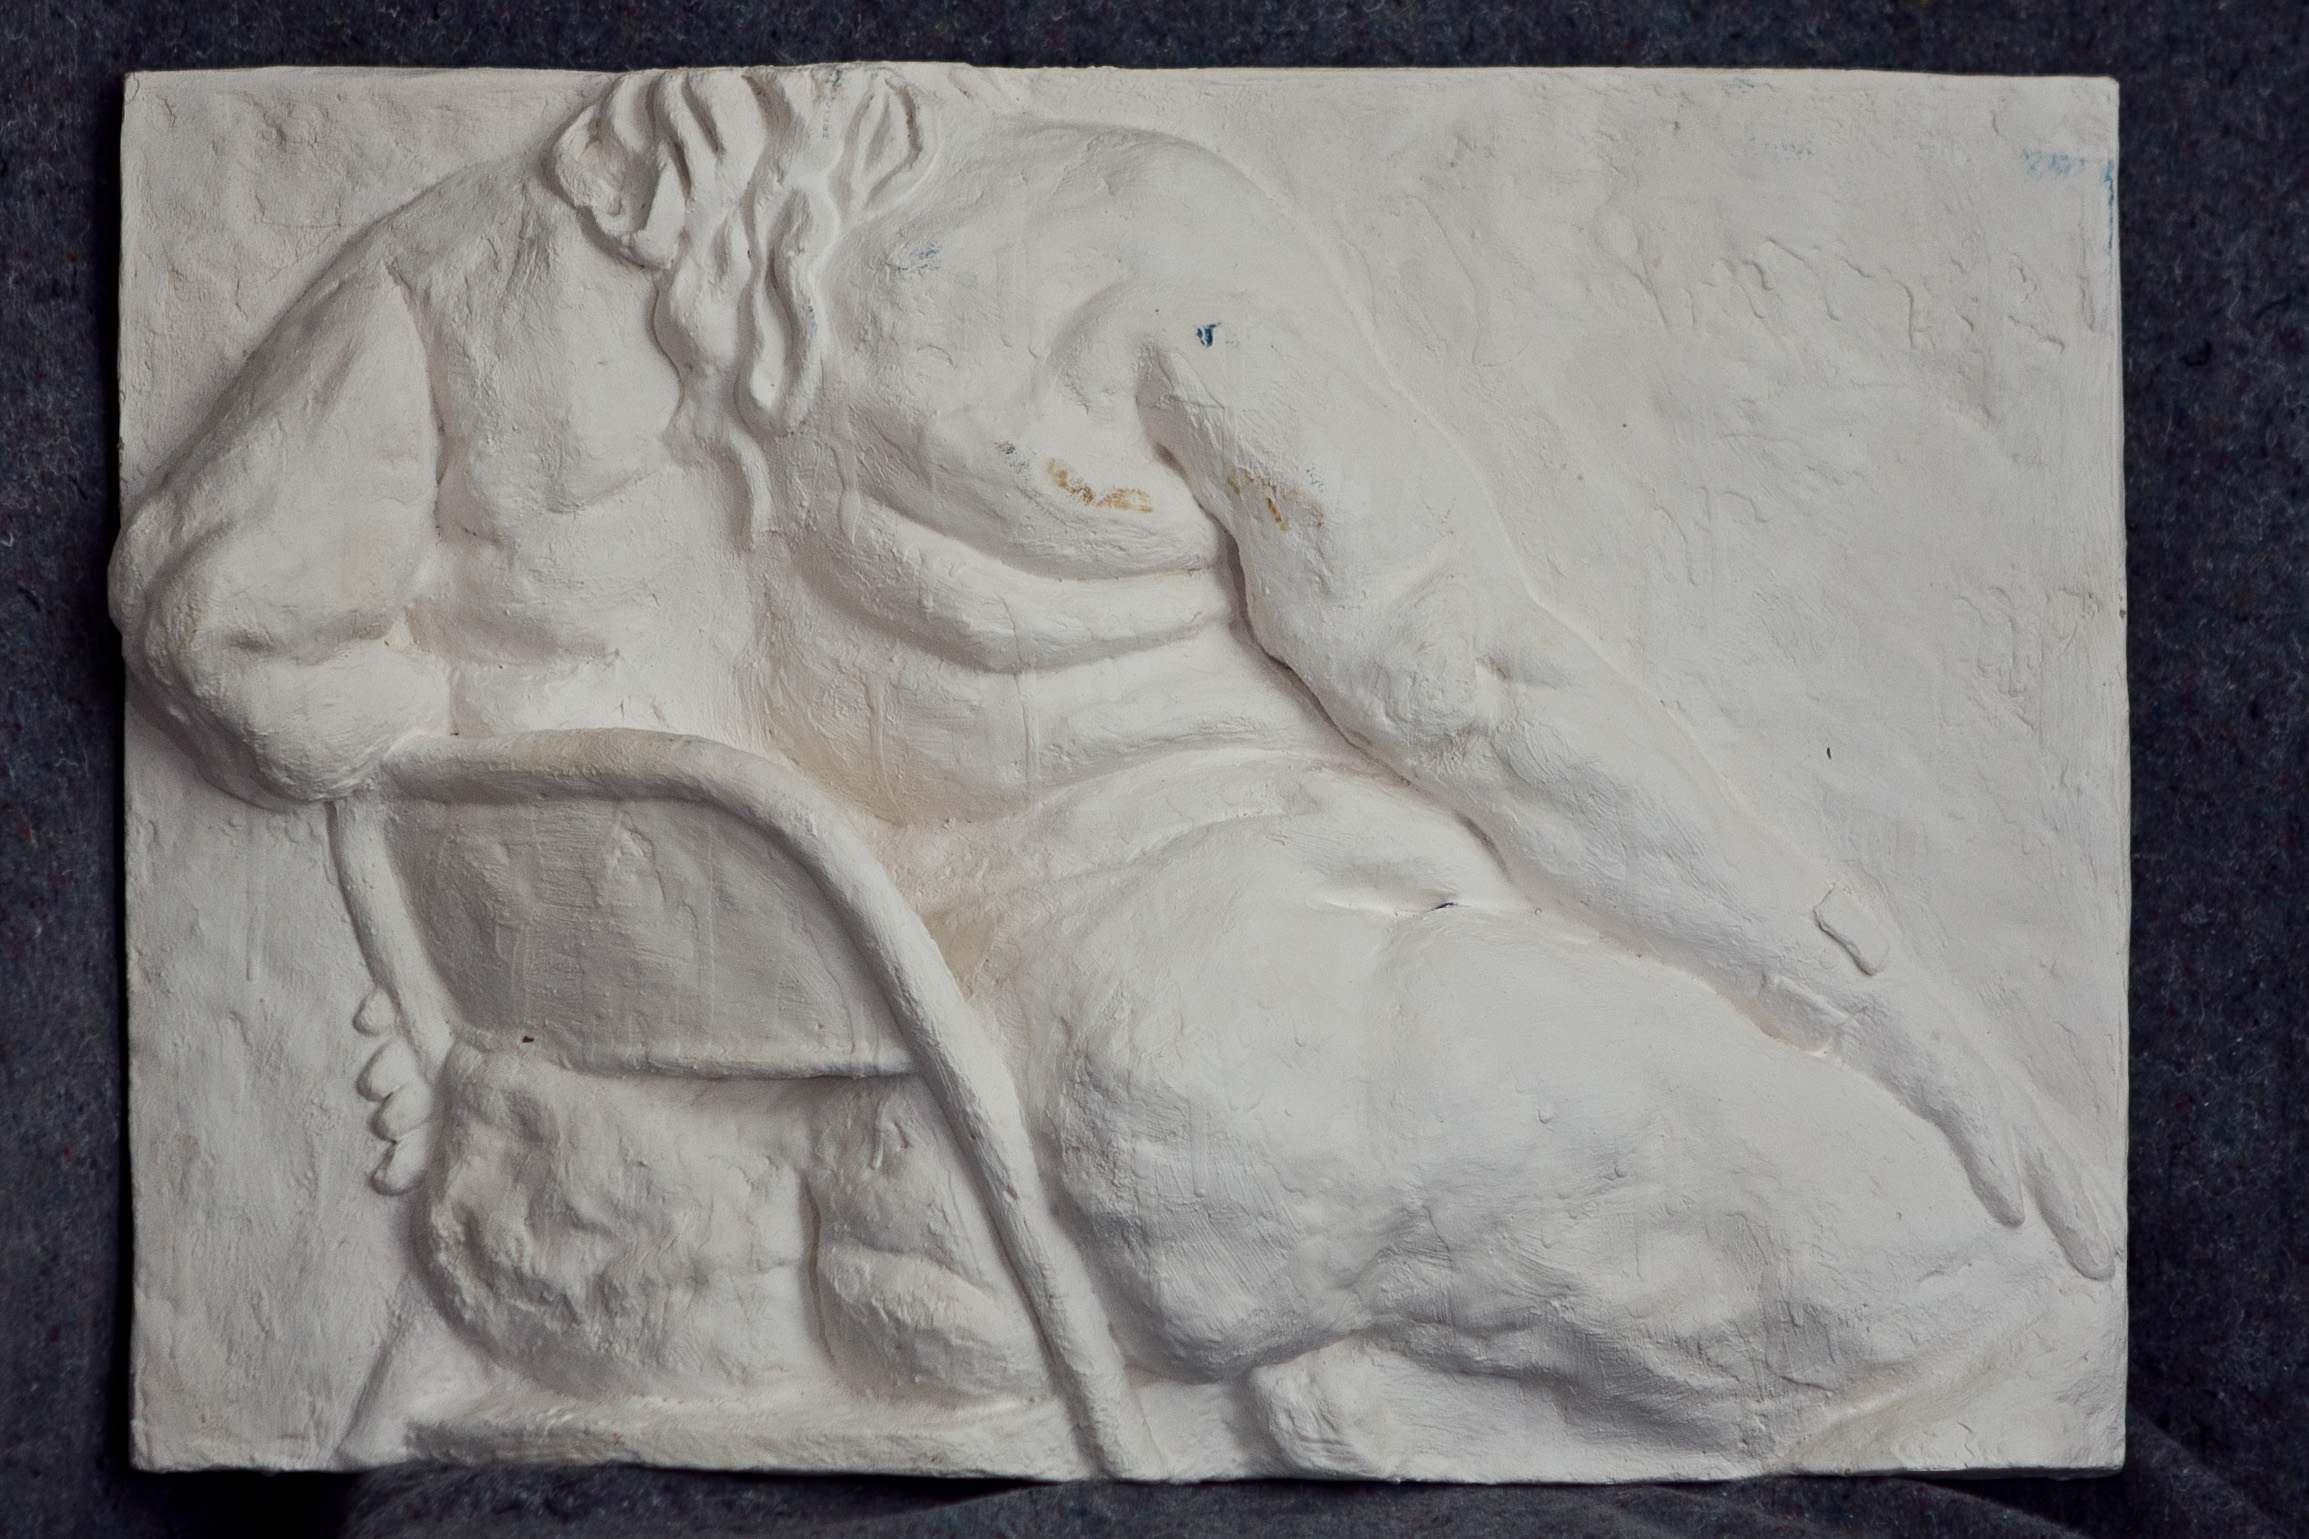 Relief Sculpture study of Aviva